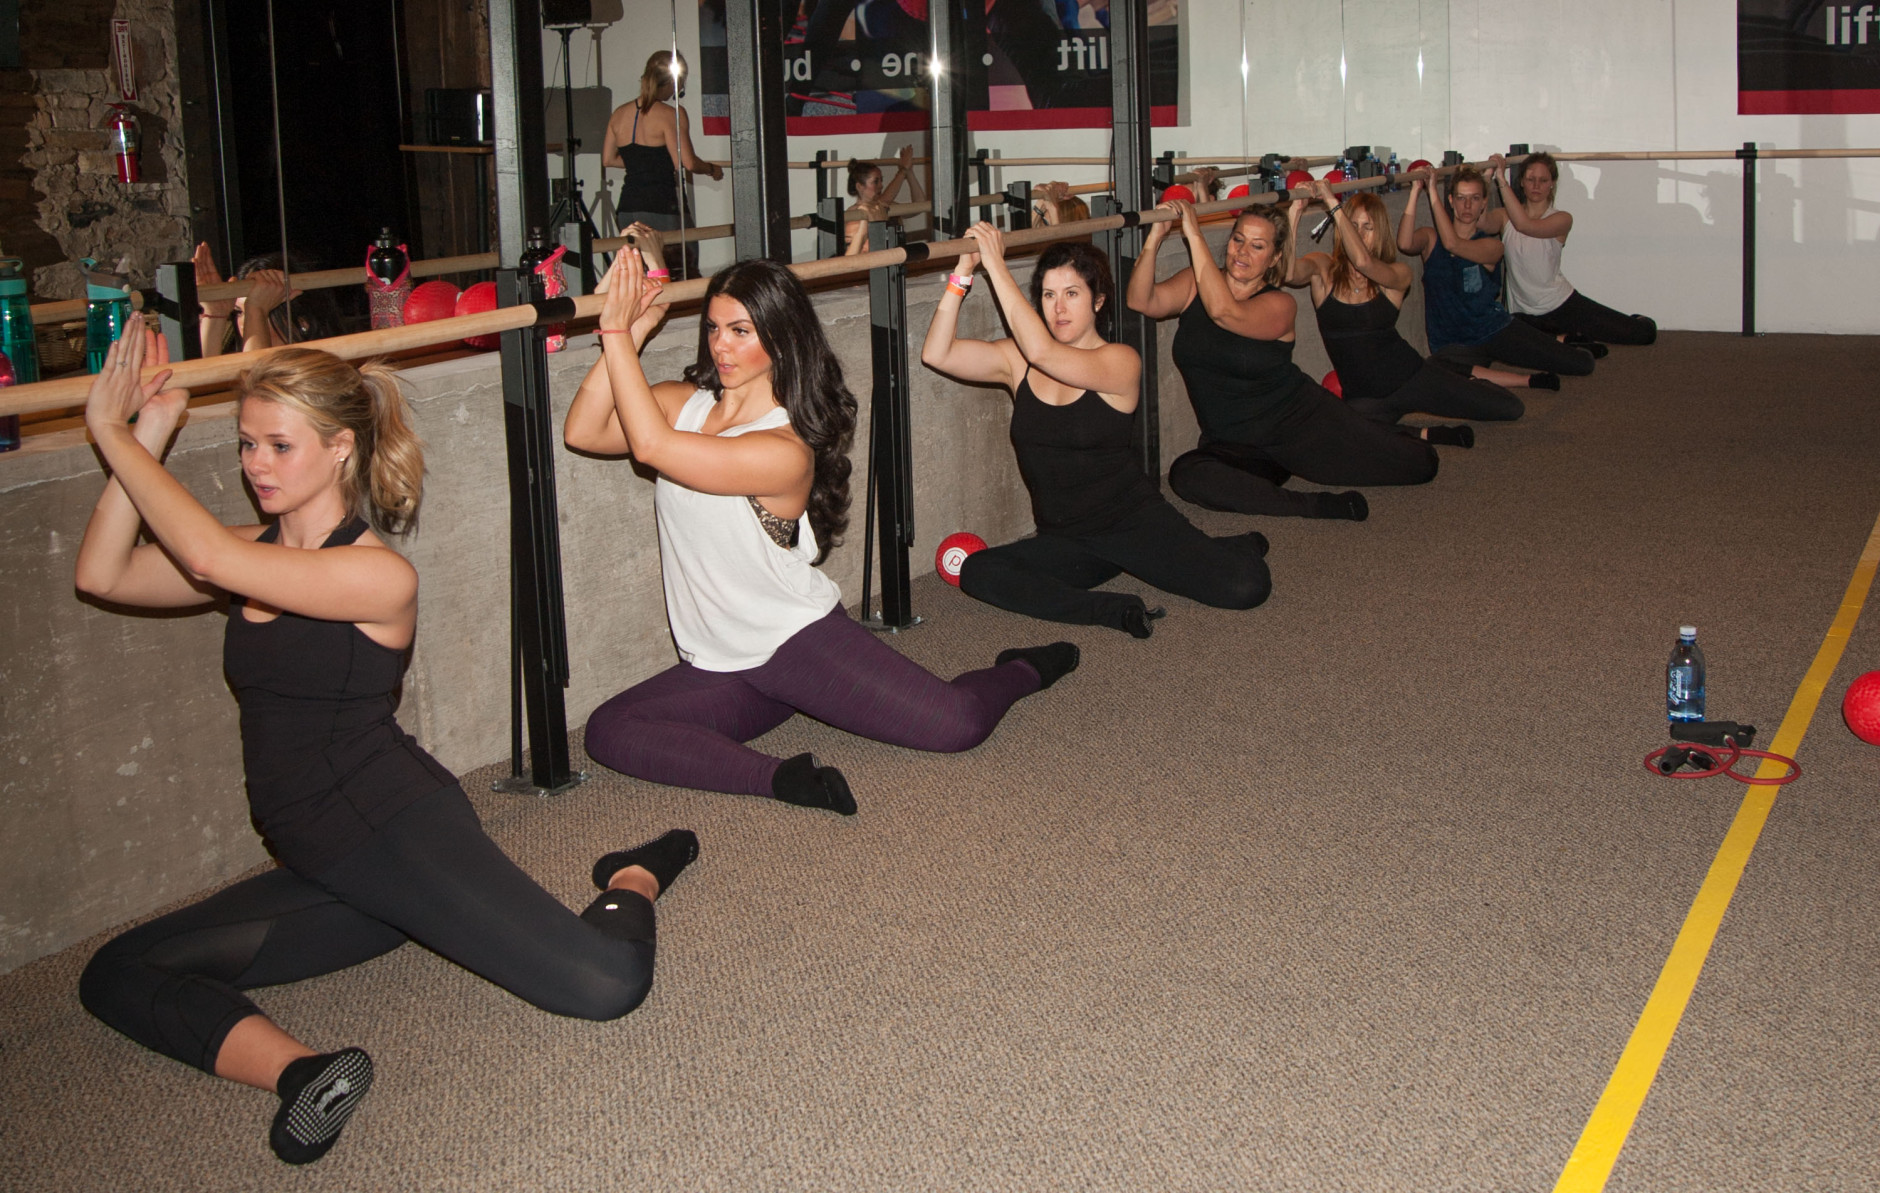 PARK CITY, UT - JANUARY 25:  Sundance goers attend Pure Barre Hosts Pop-up Studio - Day 3 - 2015 Park City on January 25, 2015 in Park City, Utah.  (Photo by Lily Lawrence/Getty Images for Pure Barre)